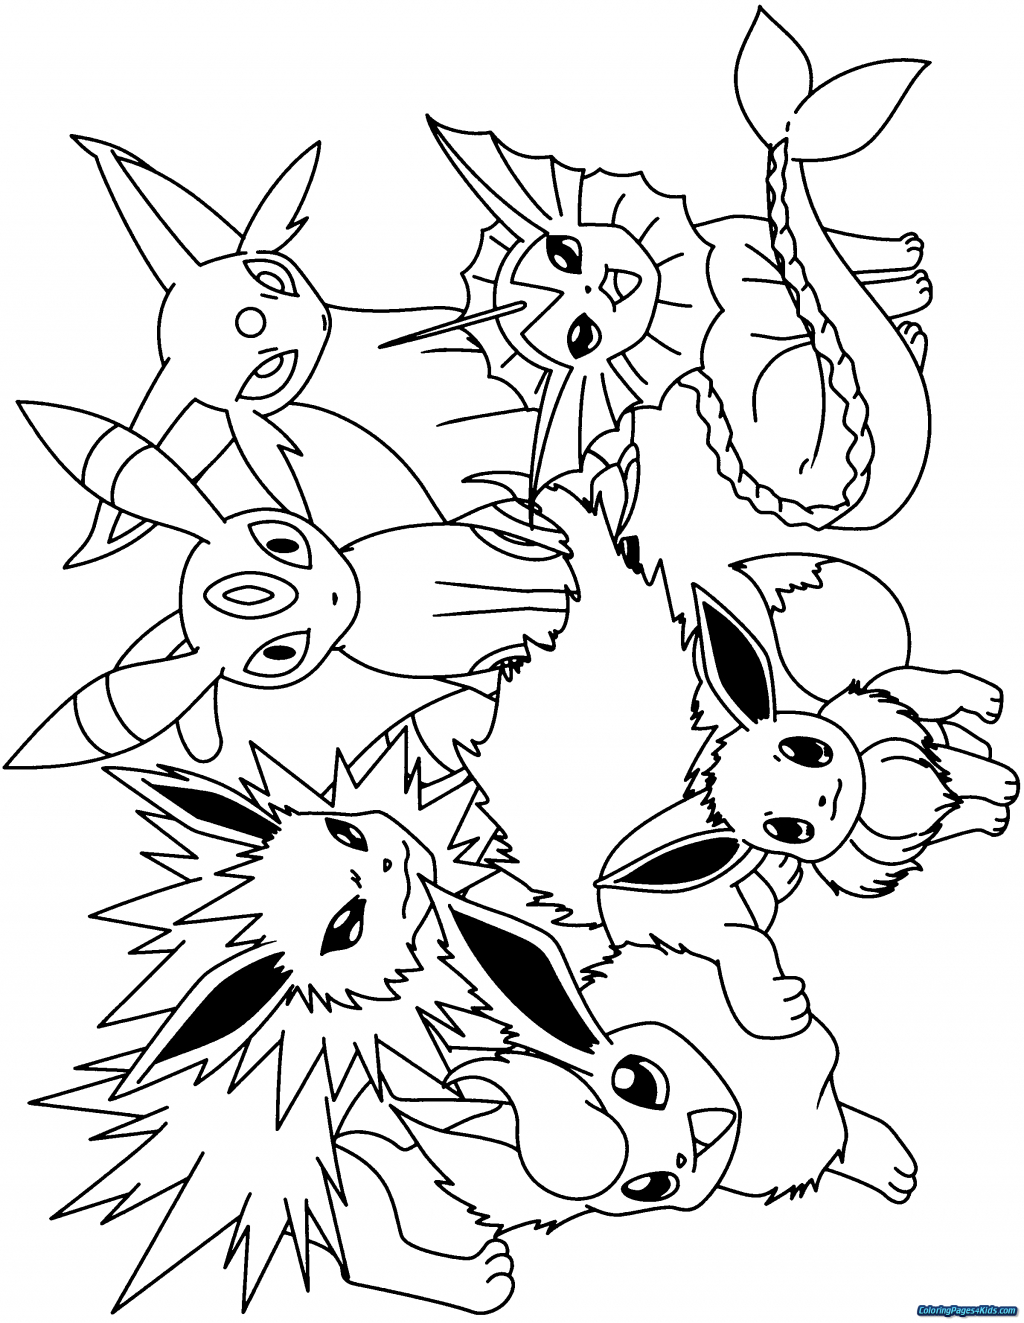 Pokemon Eevee Evolutions Coloring Pages Coloring Pages Surprising Ideas Pokemoning Pages Eevee Evolutions